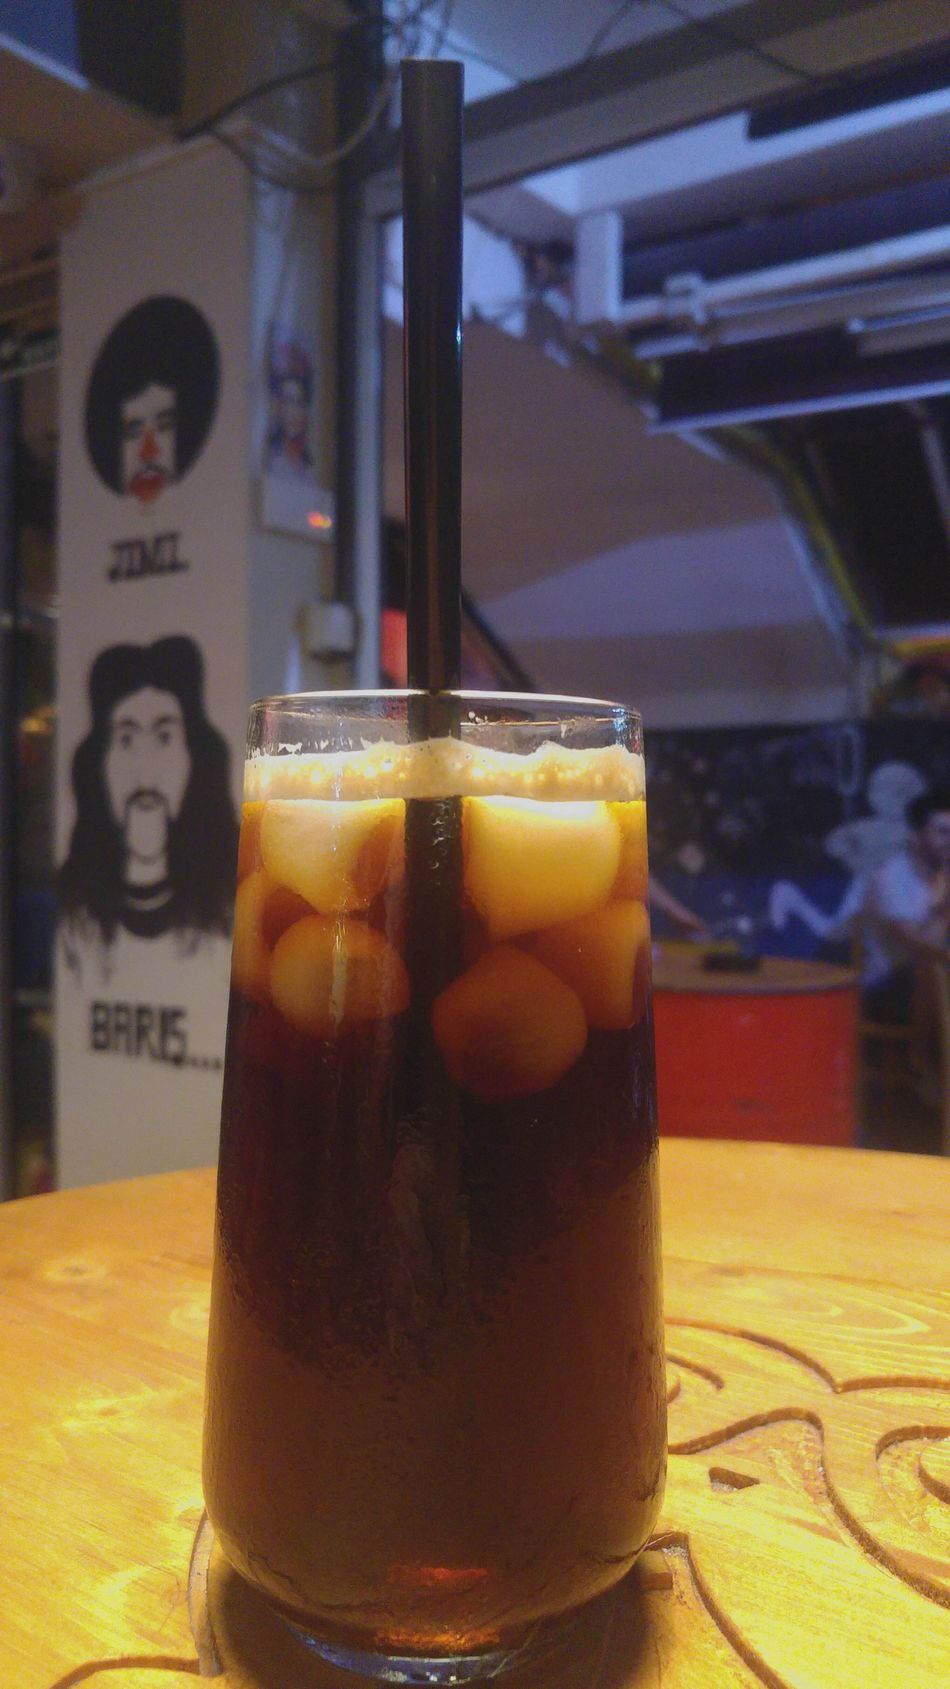 Americano Icedcoffee Icedamericano Cup Of Coffee Eye Em Gallery EyeEmTurkey